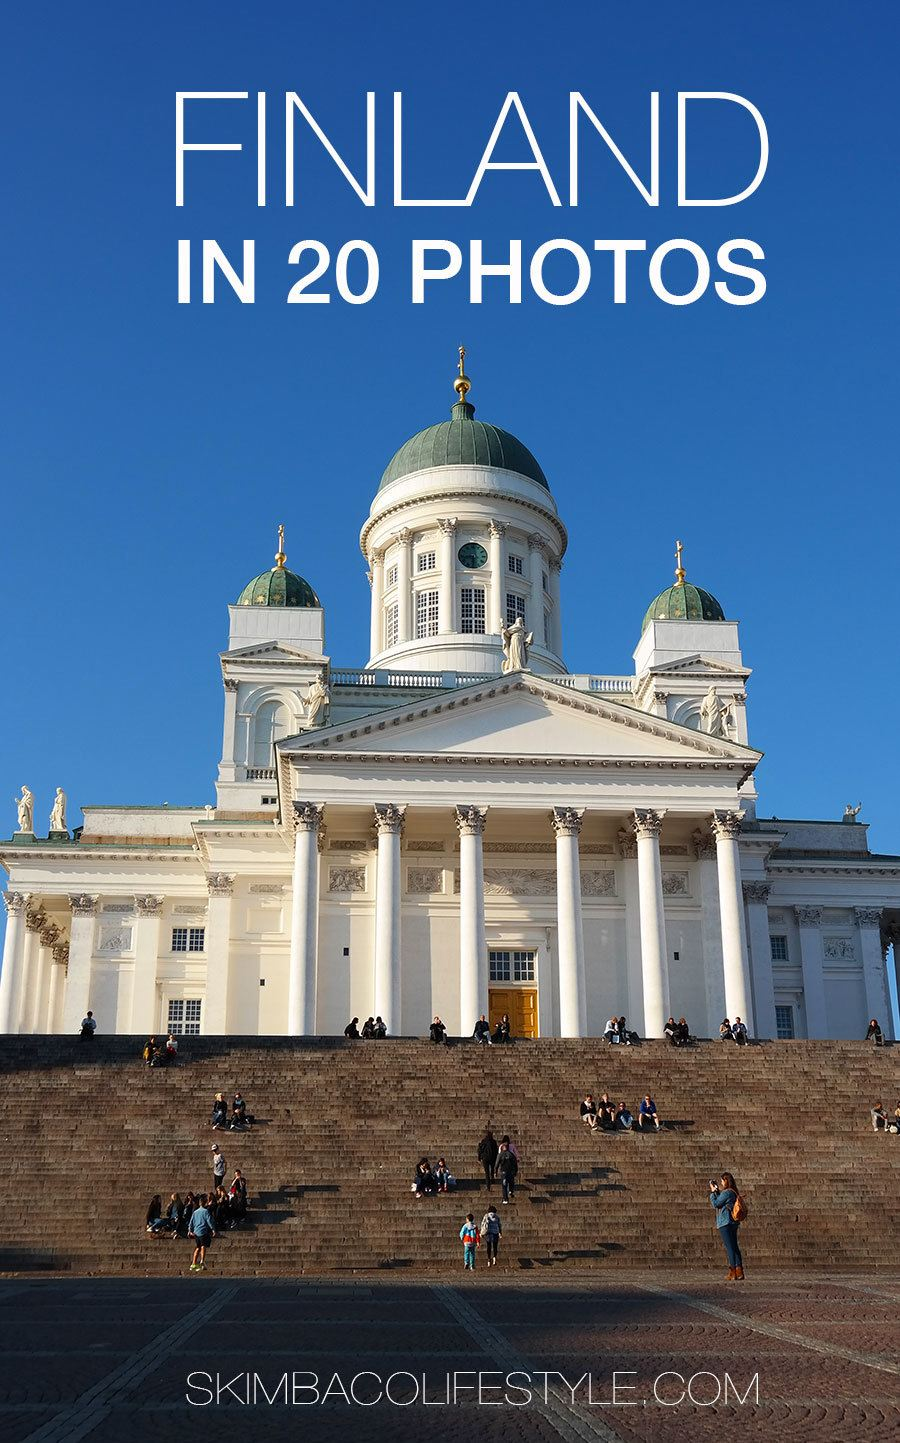 FINLAND-IN-20-PHOTOS